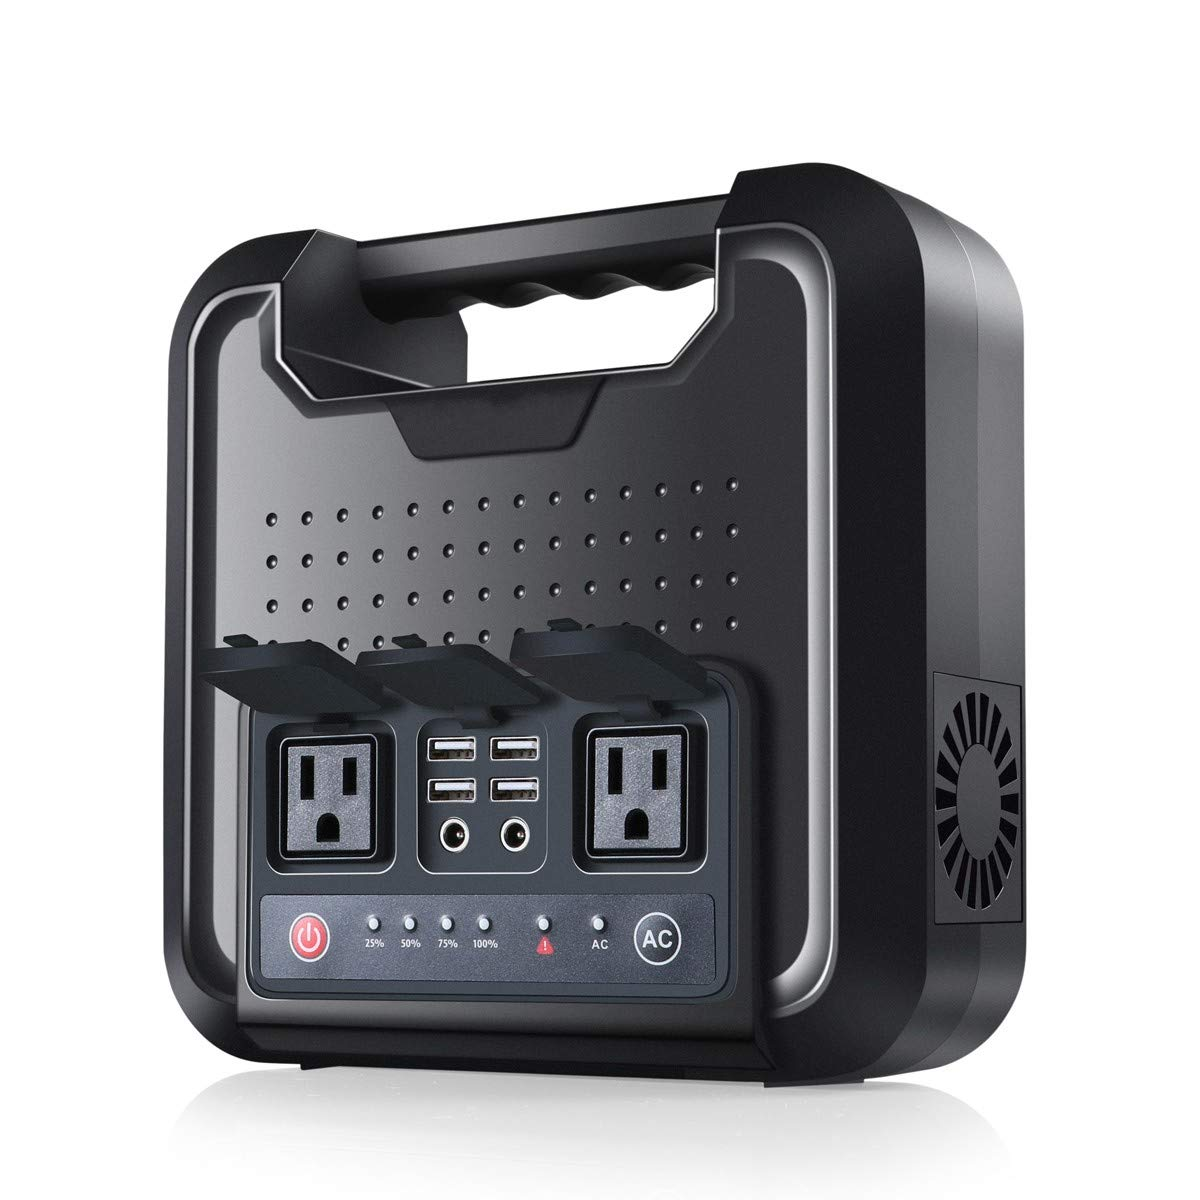 Portable Generator 300W 64800mAh Portable Power Supply, 220Wh UPS Battery Backup Pack Rechargeable Power Station with 2 110V AC Outlet, 2 DC Ports, 4 USB Ports for Camping, CPAP or Emergency Backup